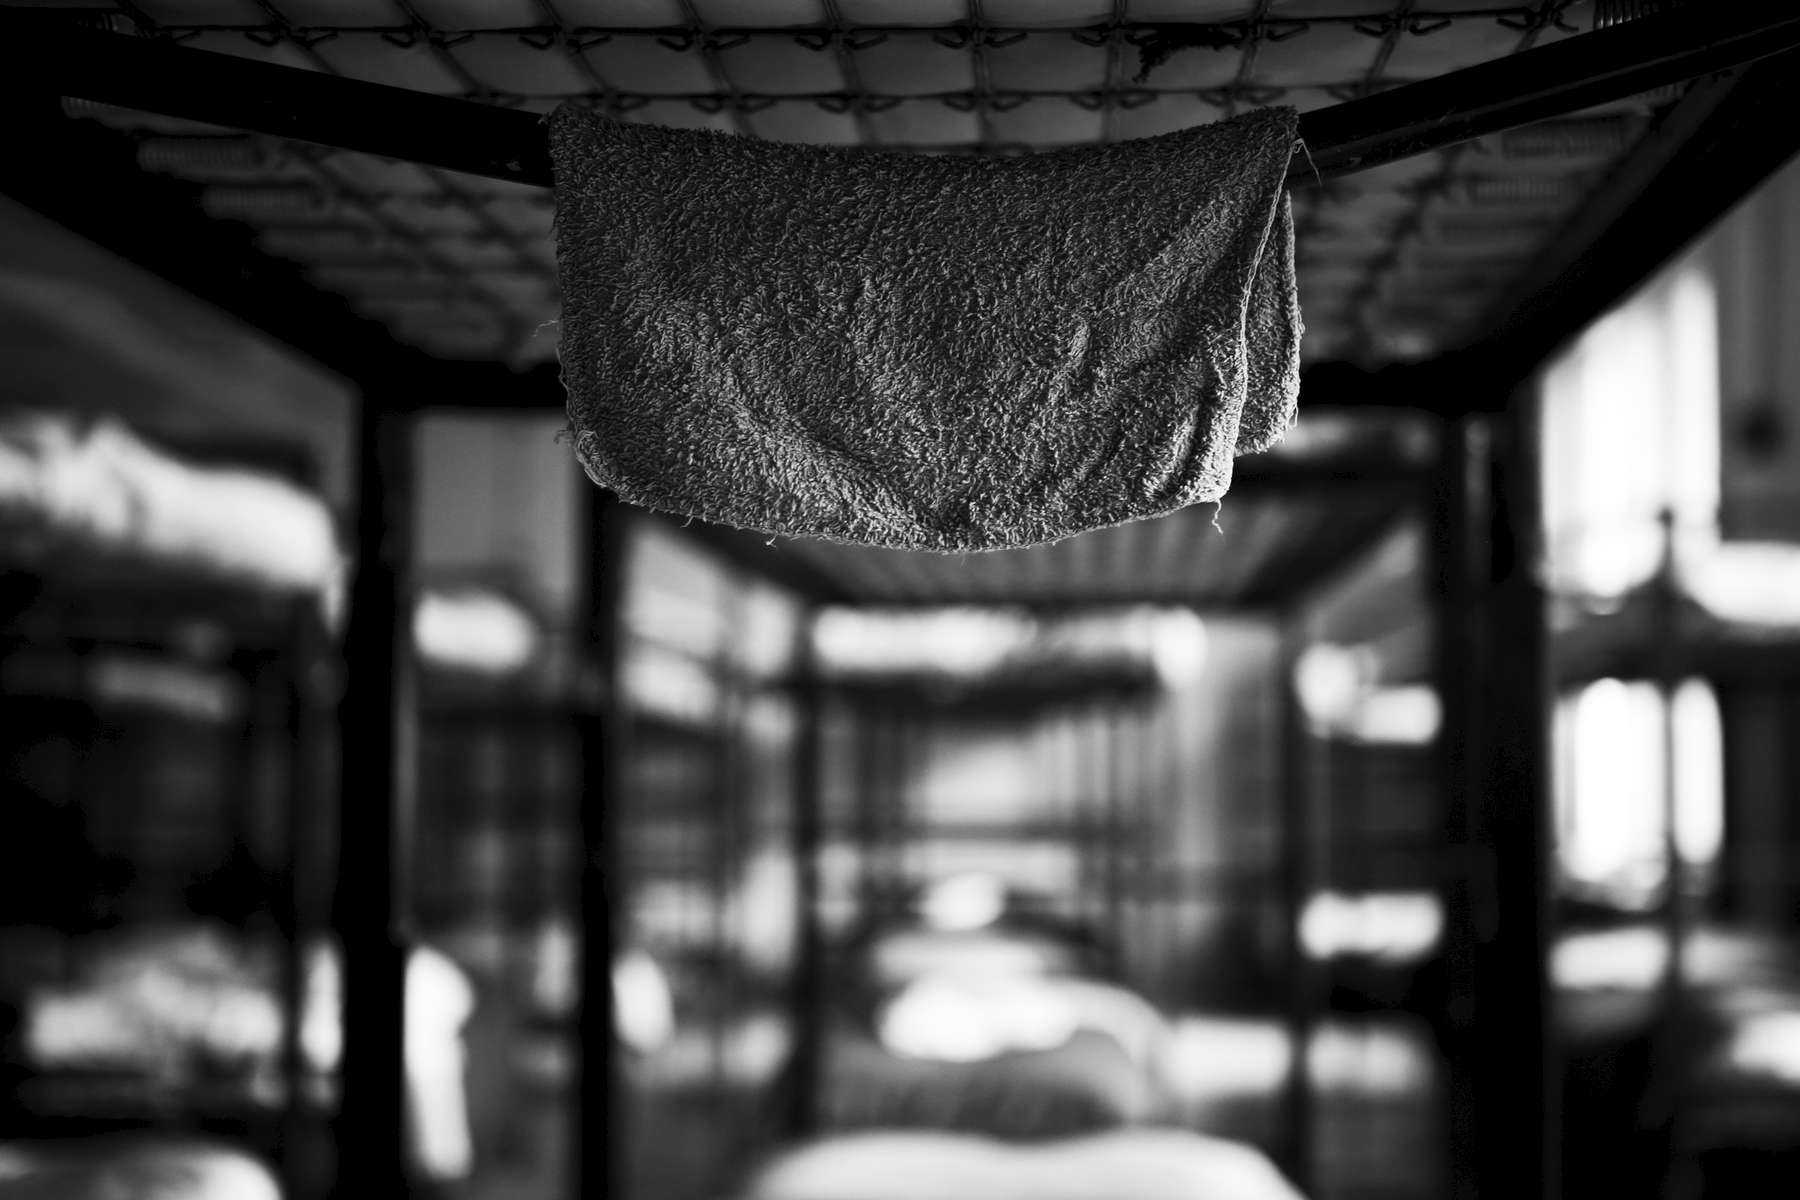 Boston, Massachusetts -- 10/21/2014-- Inside the men\'s dormitory a washcloth hung above a bed inside the Long Island Shelter.